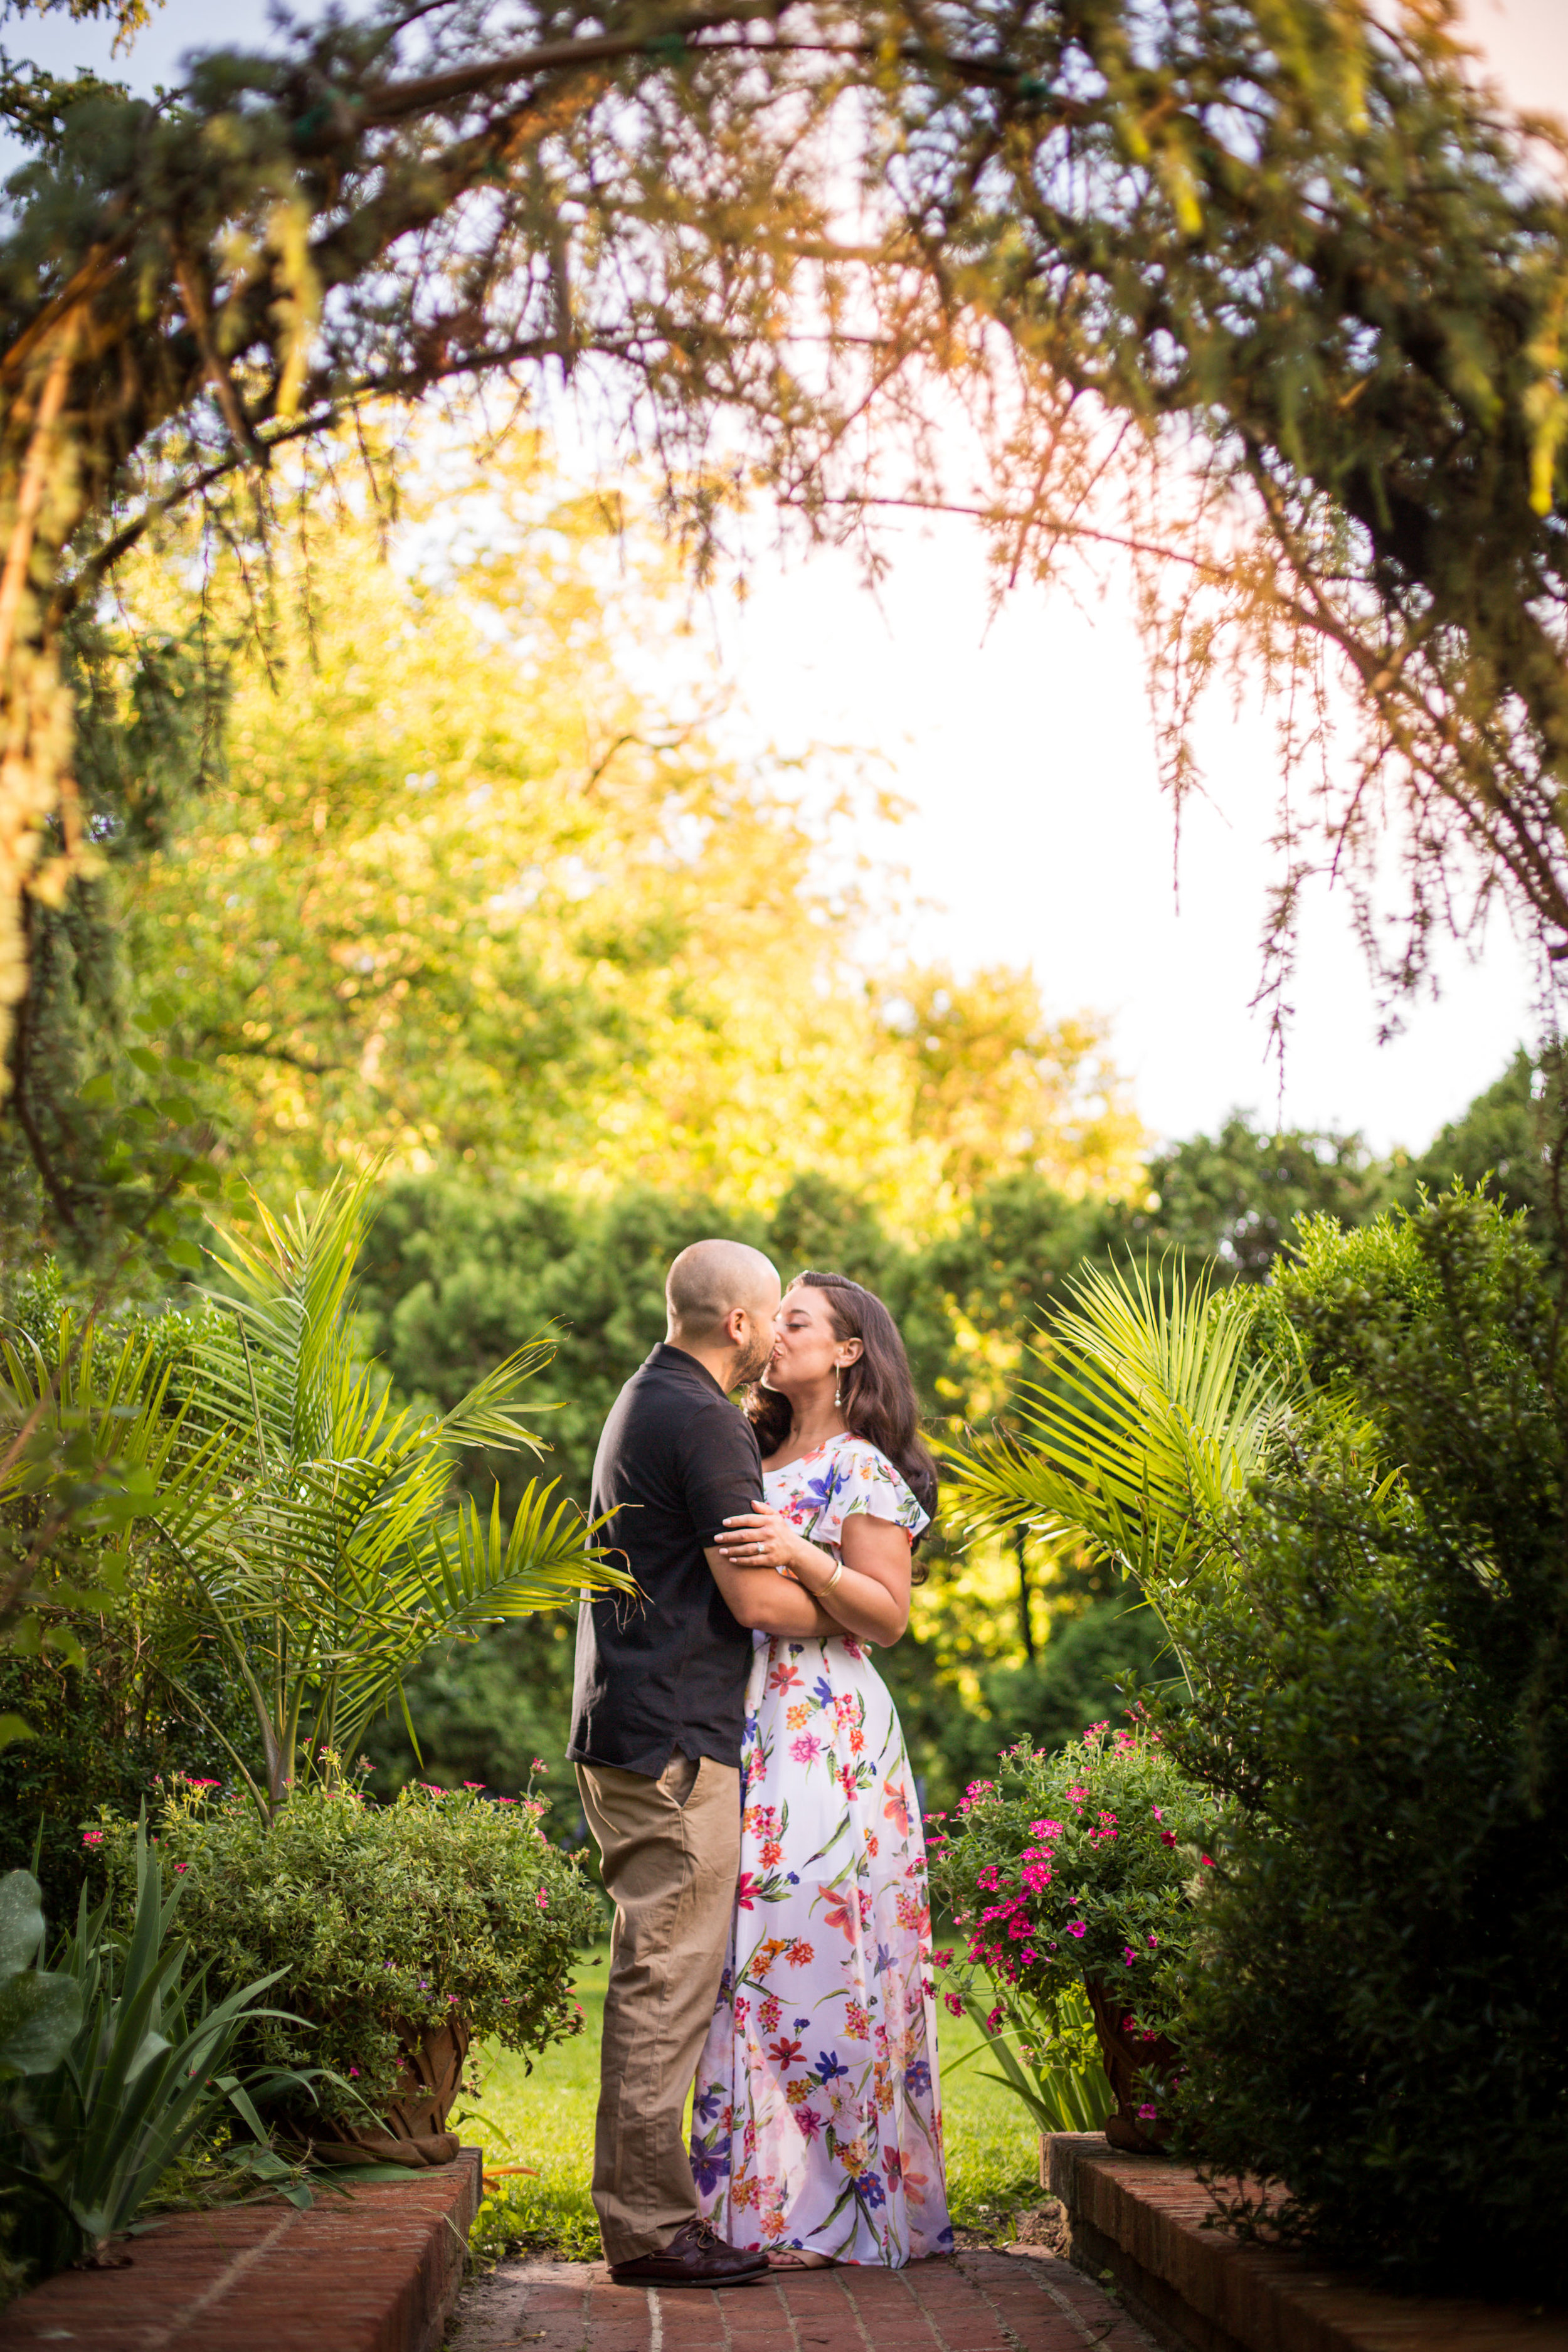 Beautiful engagement session on the grounds of Merry Sherwood. The gardens are painstakingly cared for with the utmost attention to detail and clear thought of the time period.